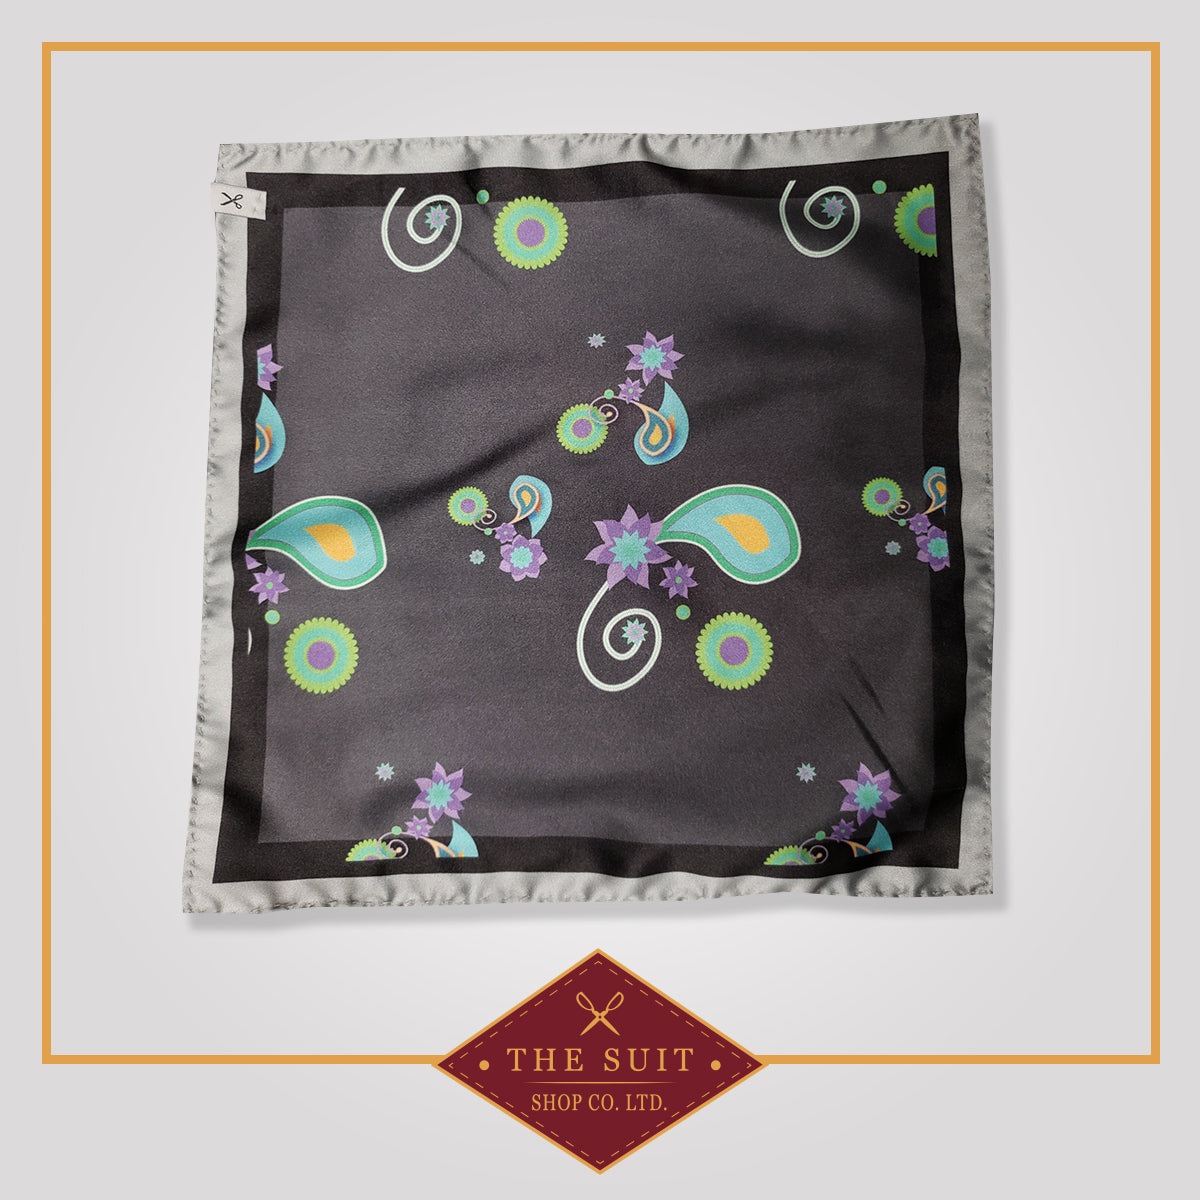 Dark Paisley Patterned Pocket Square